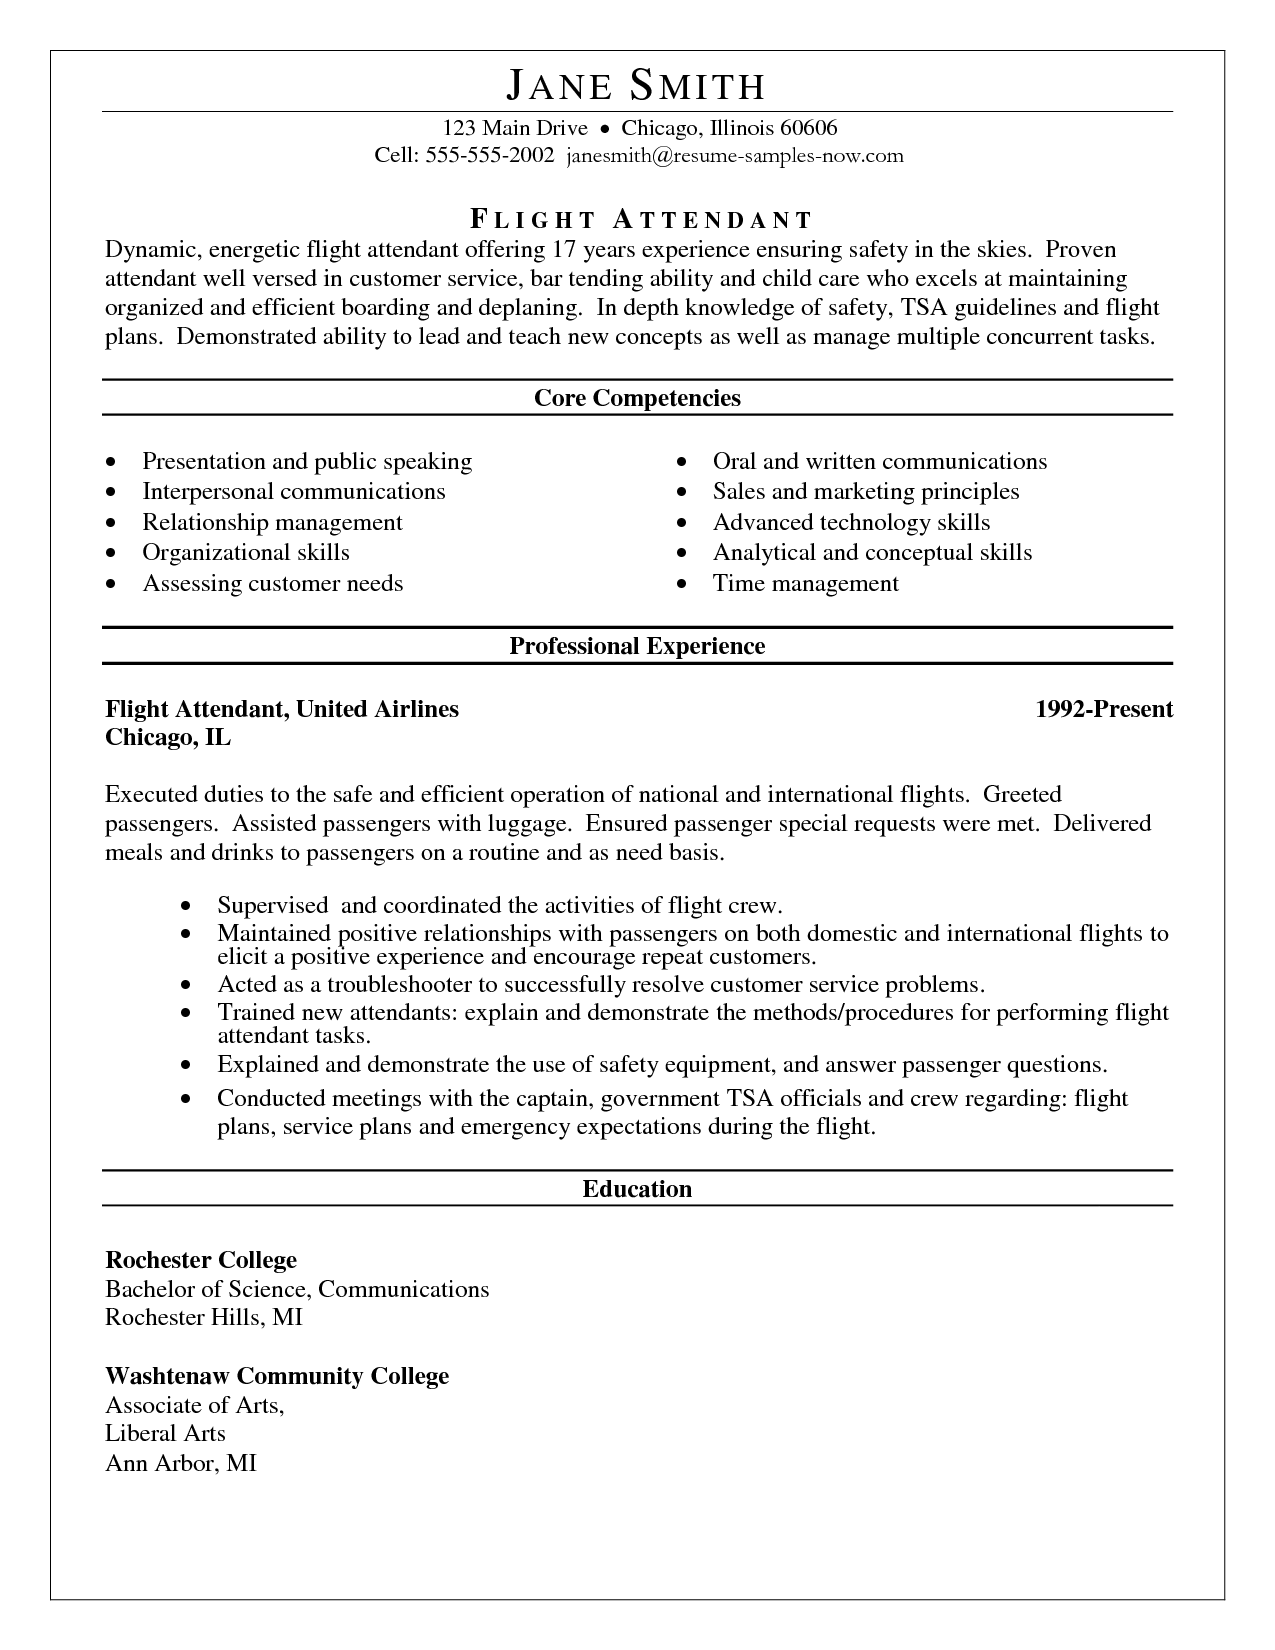 Key Qualifications In A Resume Core Competencies Resume Resume Template Pinterest